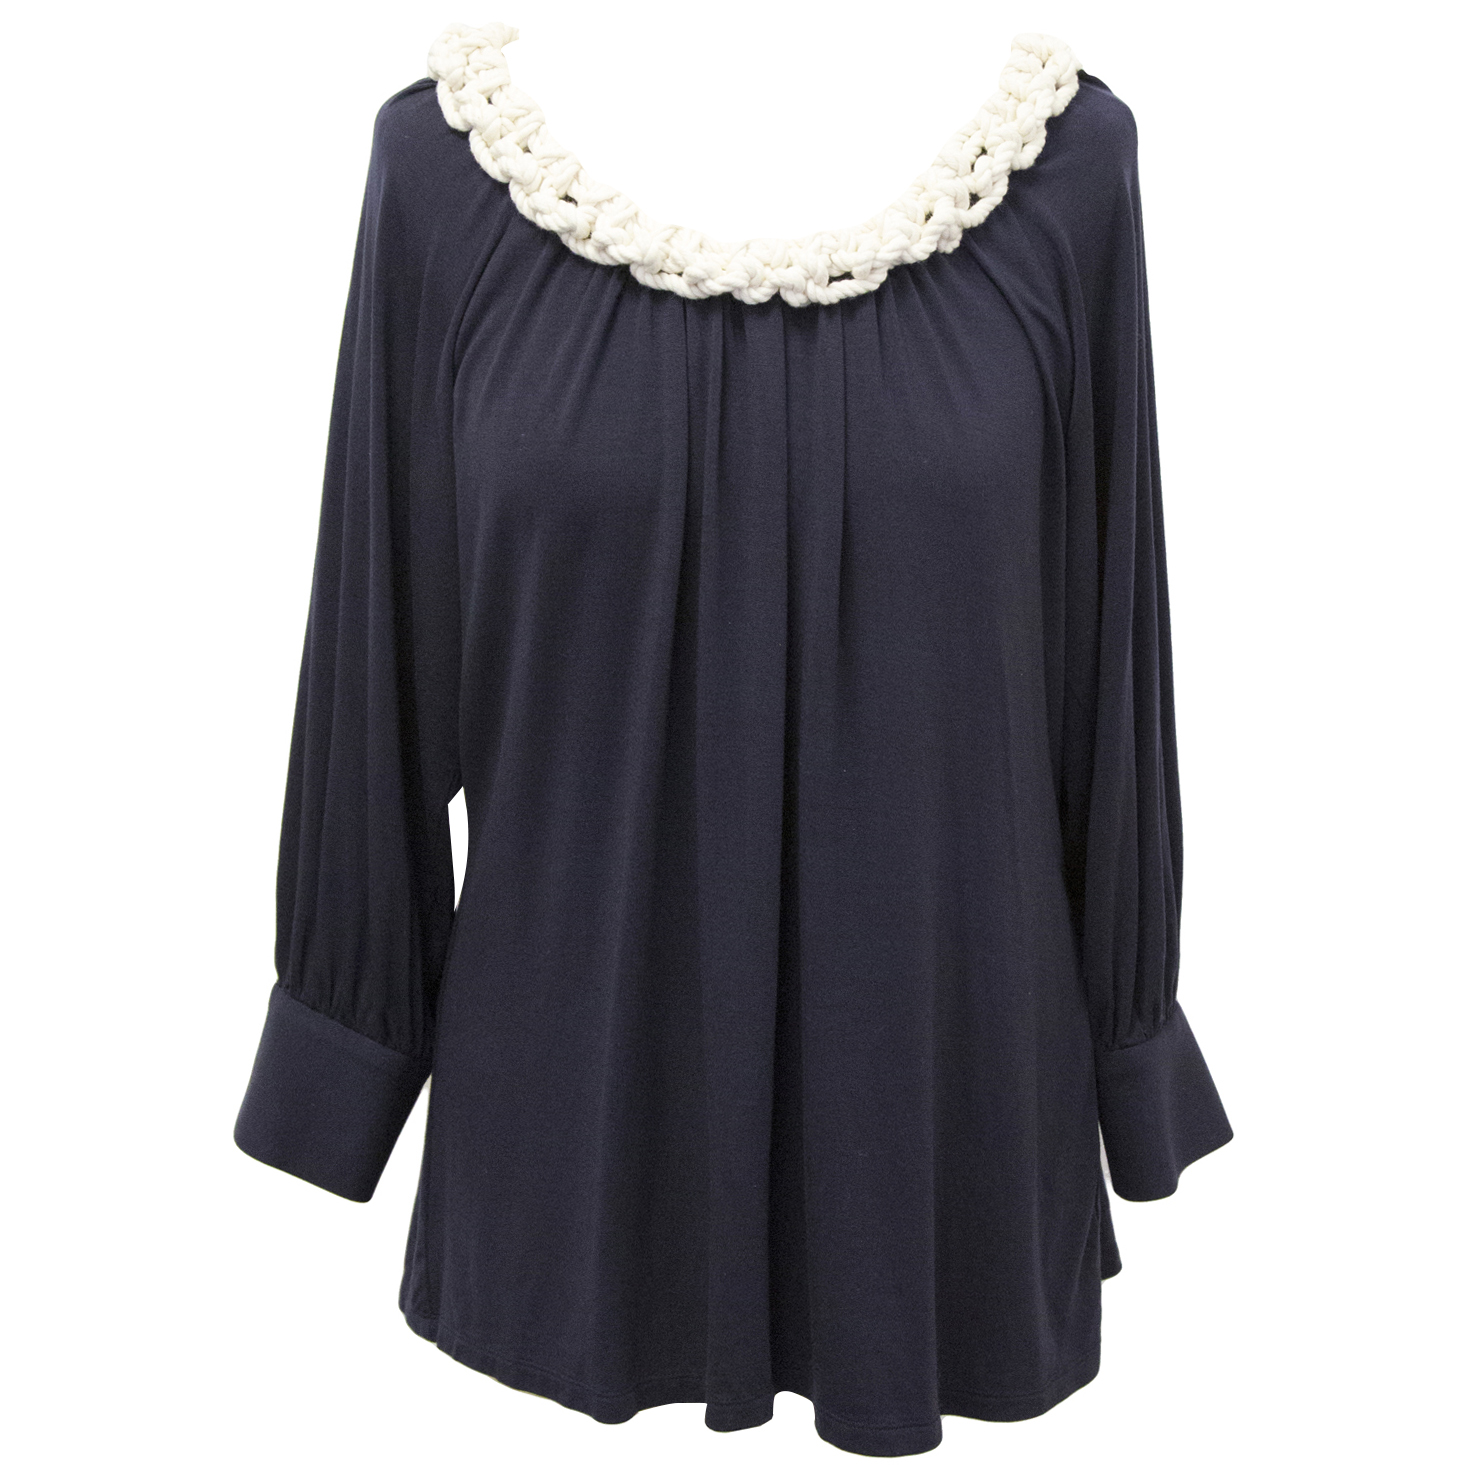 Milly navy stretch top